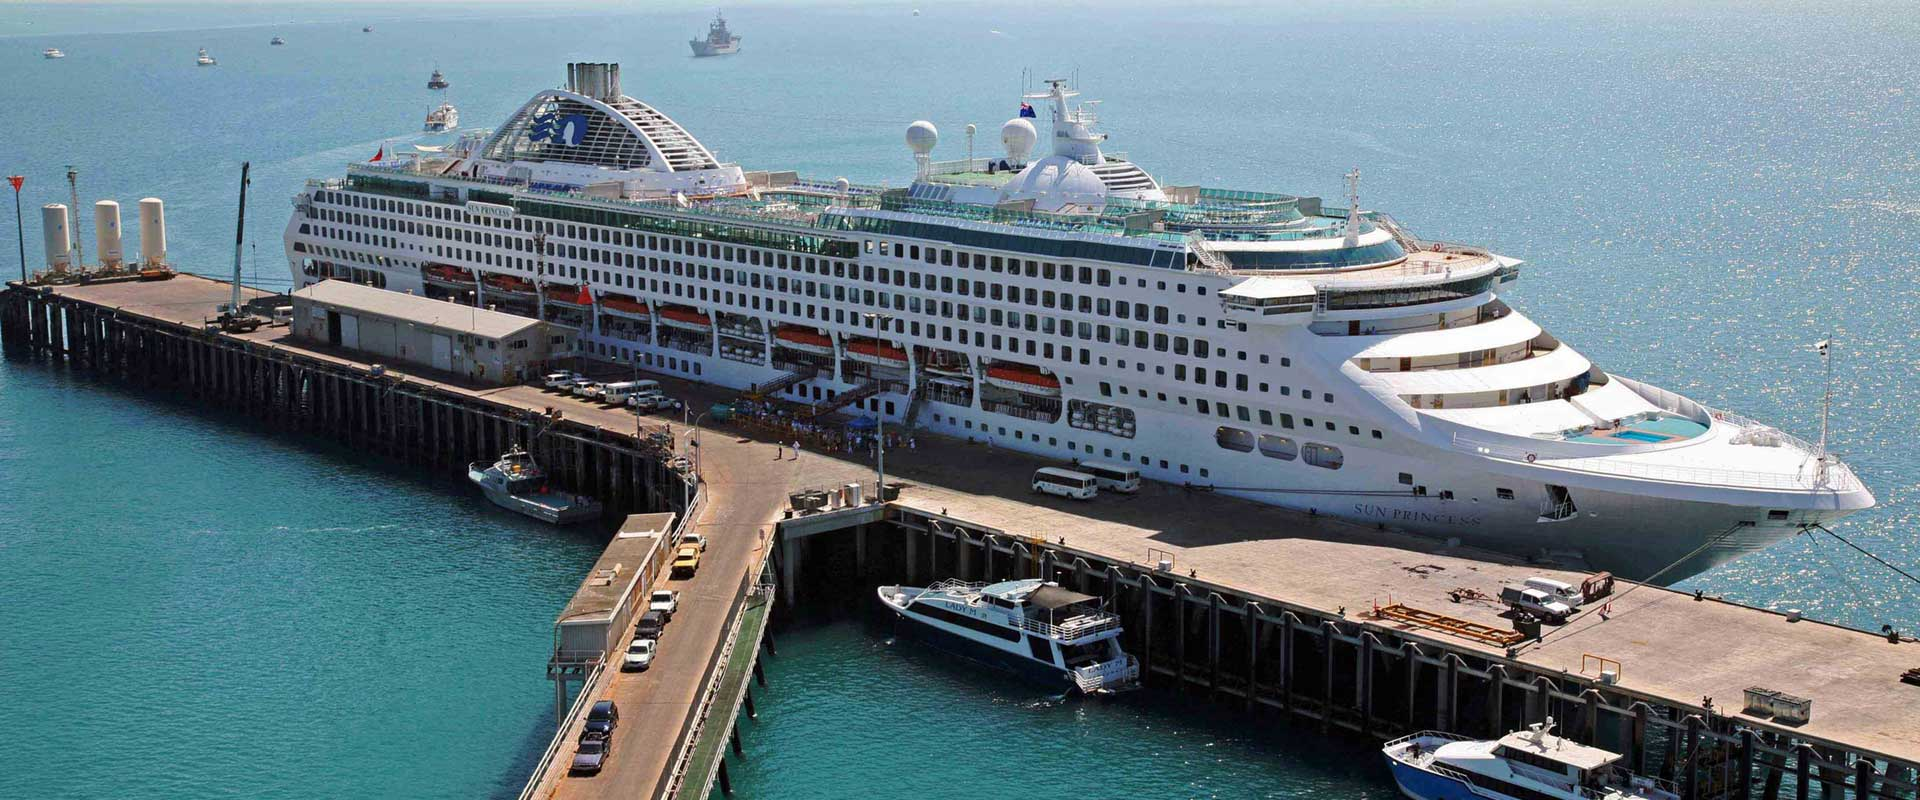 Civitavecchia port service roma travel tour - Train from fiumicino to civitavecchia port ...